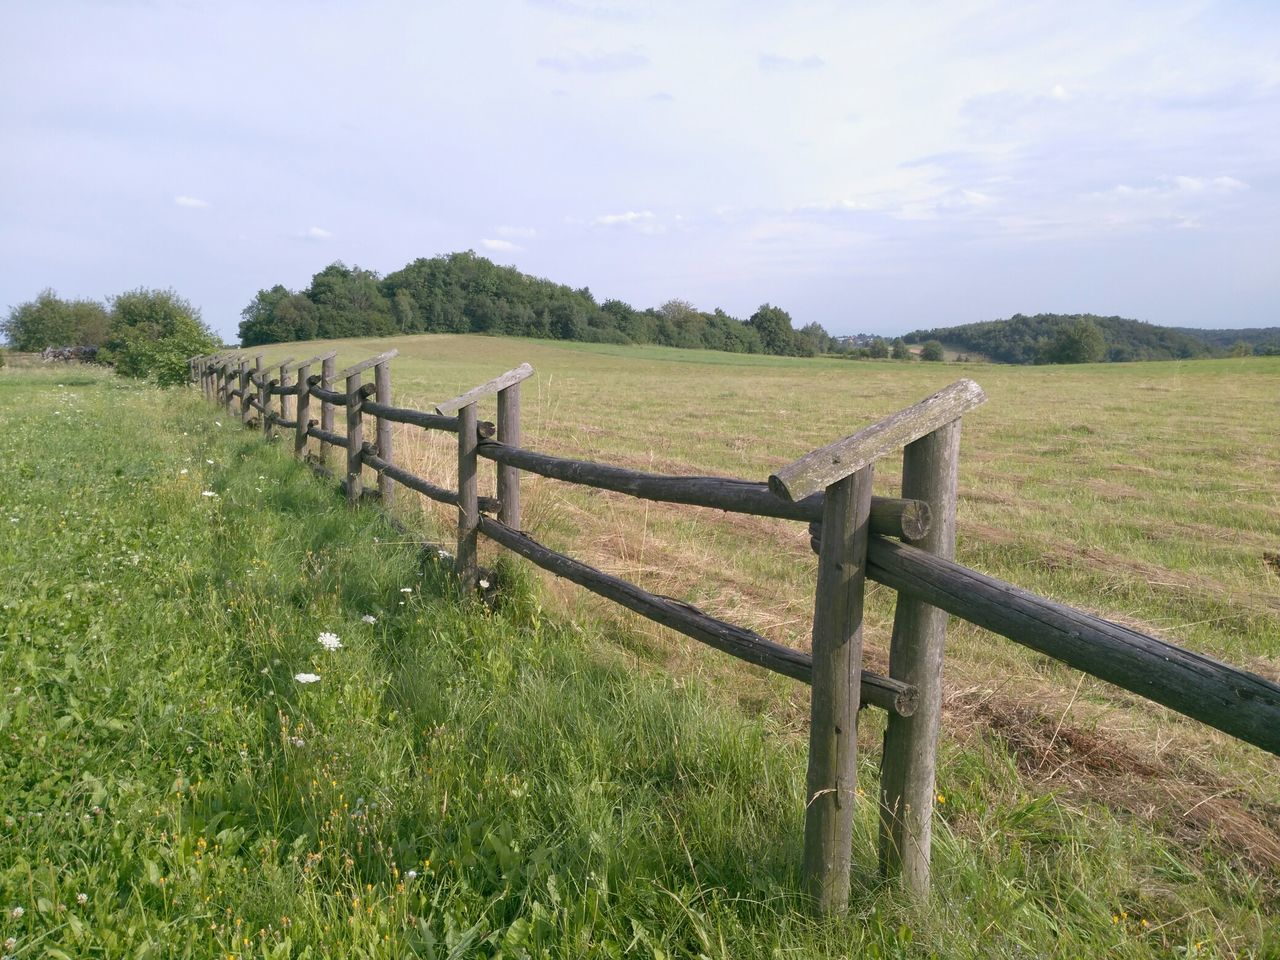 Countryside Fence Green Nature Grass Grasslands Pasture Meadowlands Countrylife Country Walks Outdoor Photography No Filter, No Edit, Just Photography Wood EyeEm Colours Of Nature GoingOut Going For A Walk Walking Around